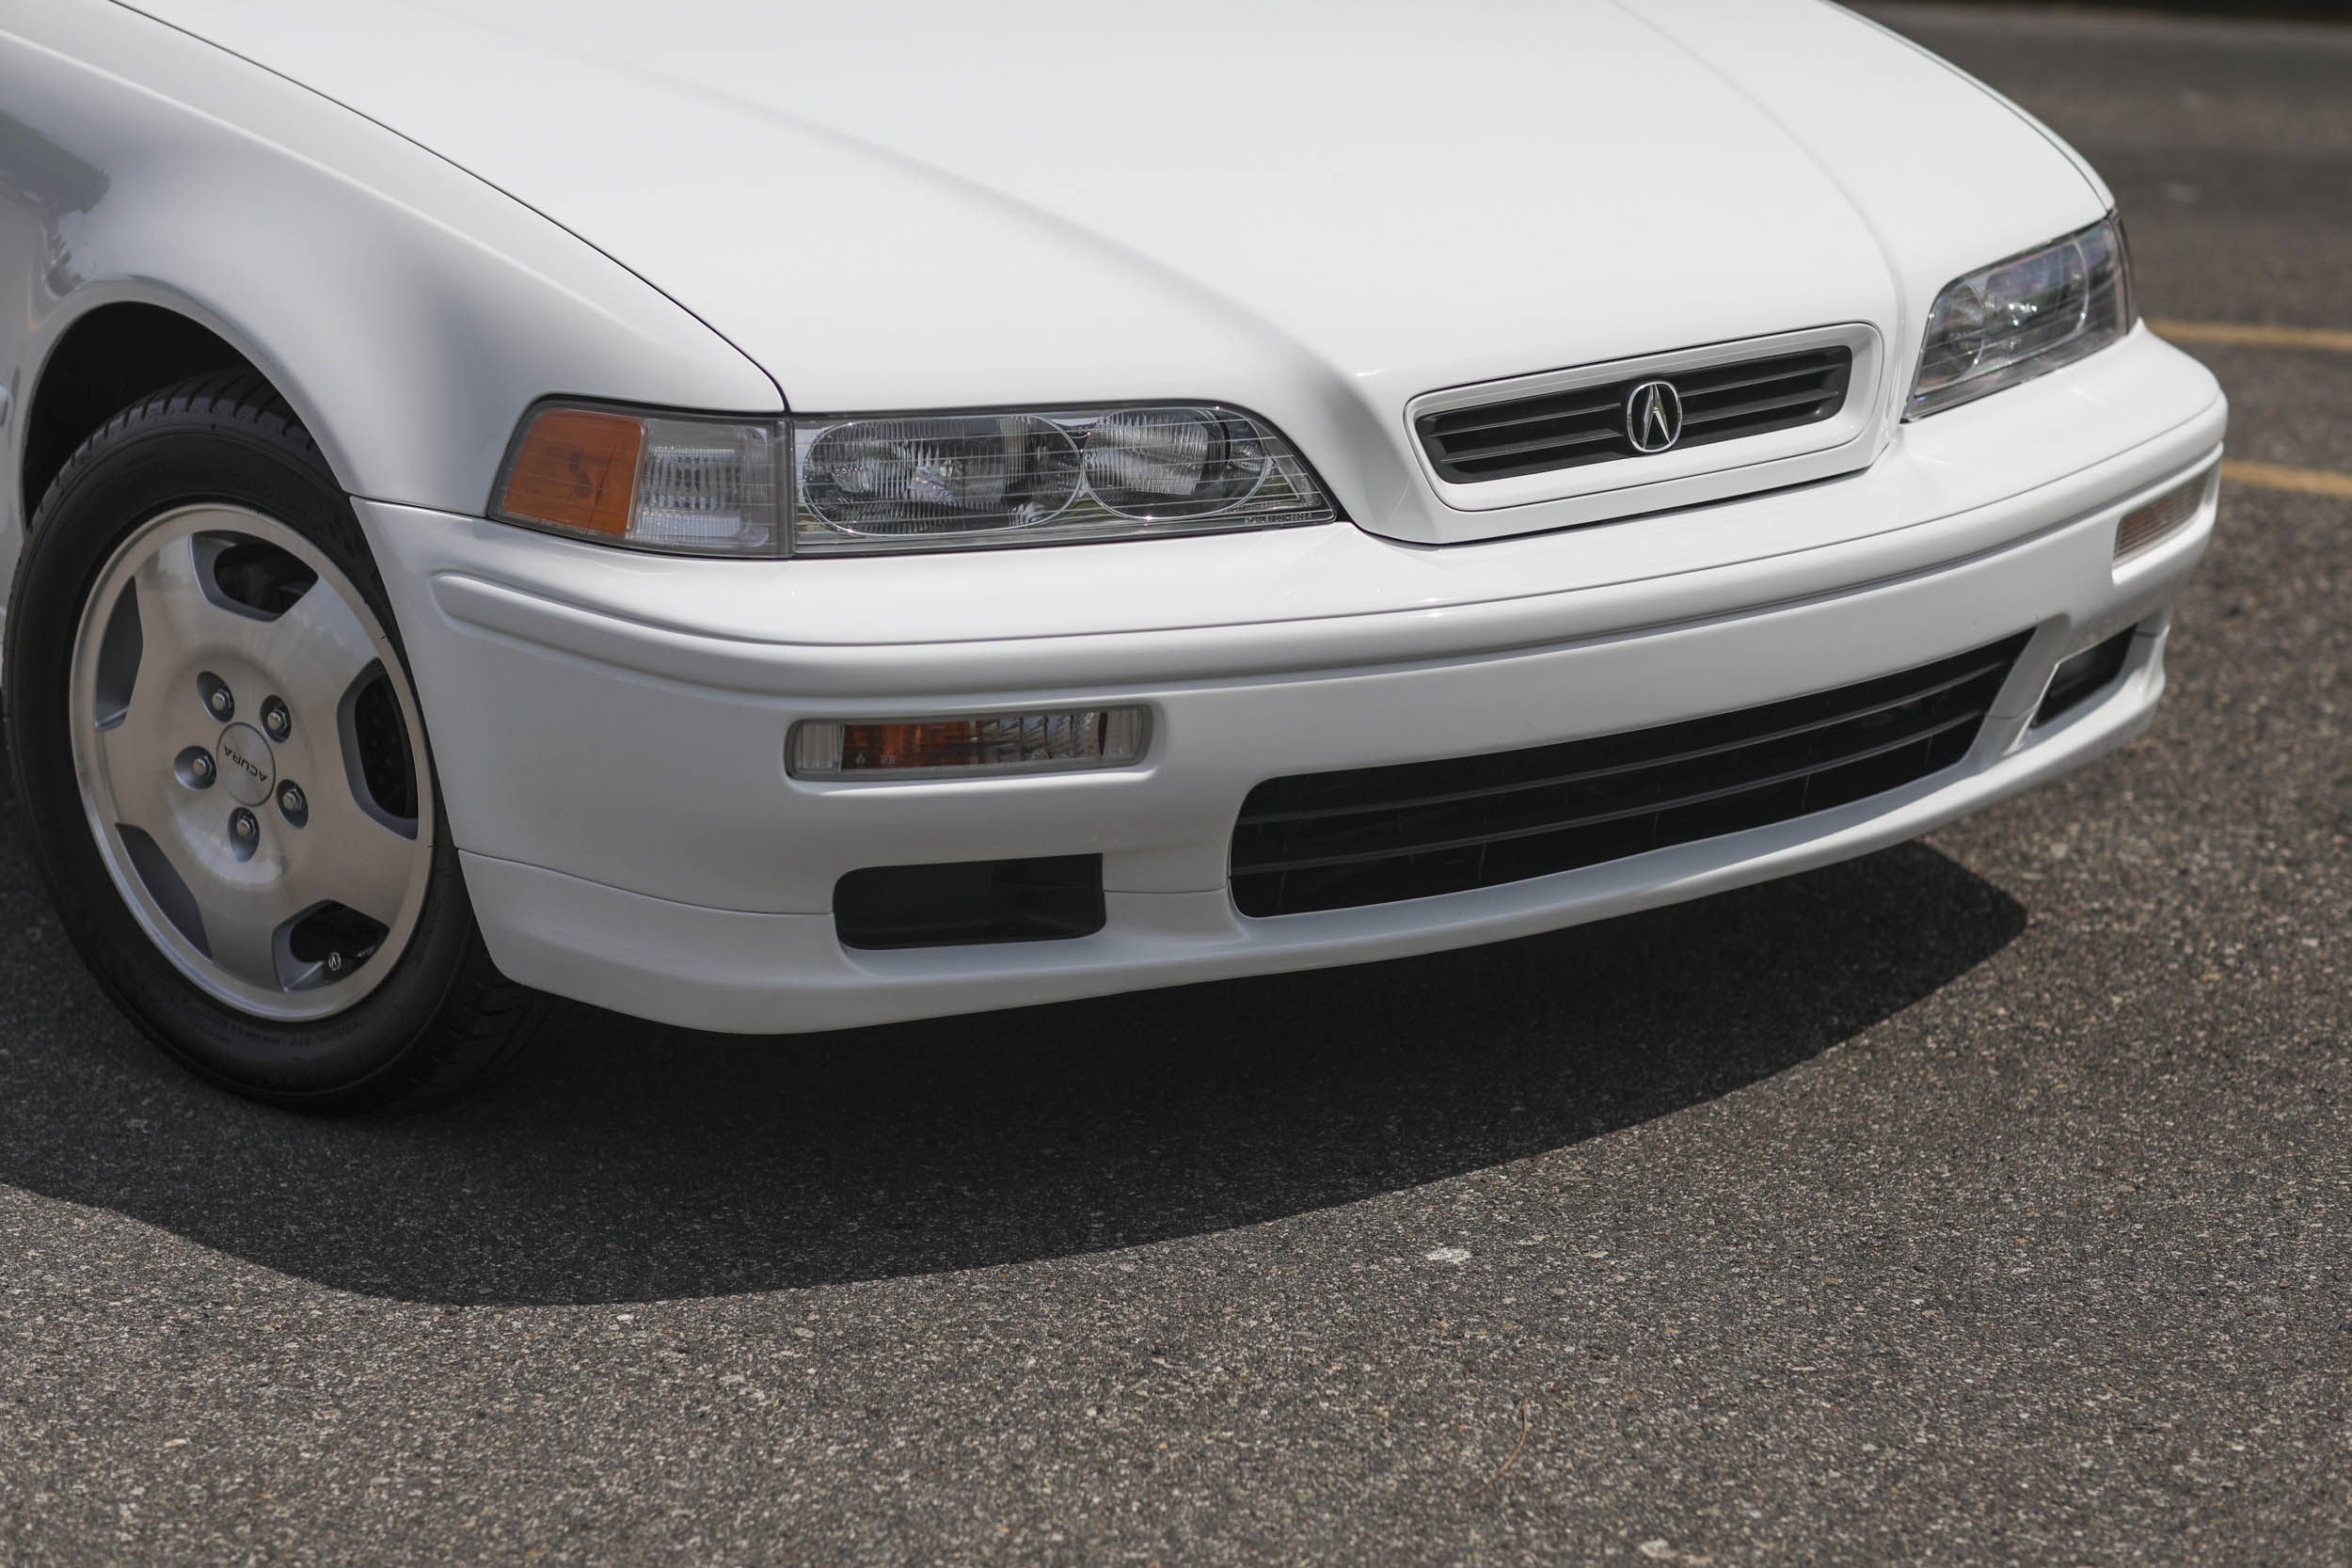 1994 Acura Legend Coupe LS nose